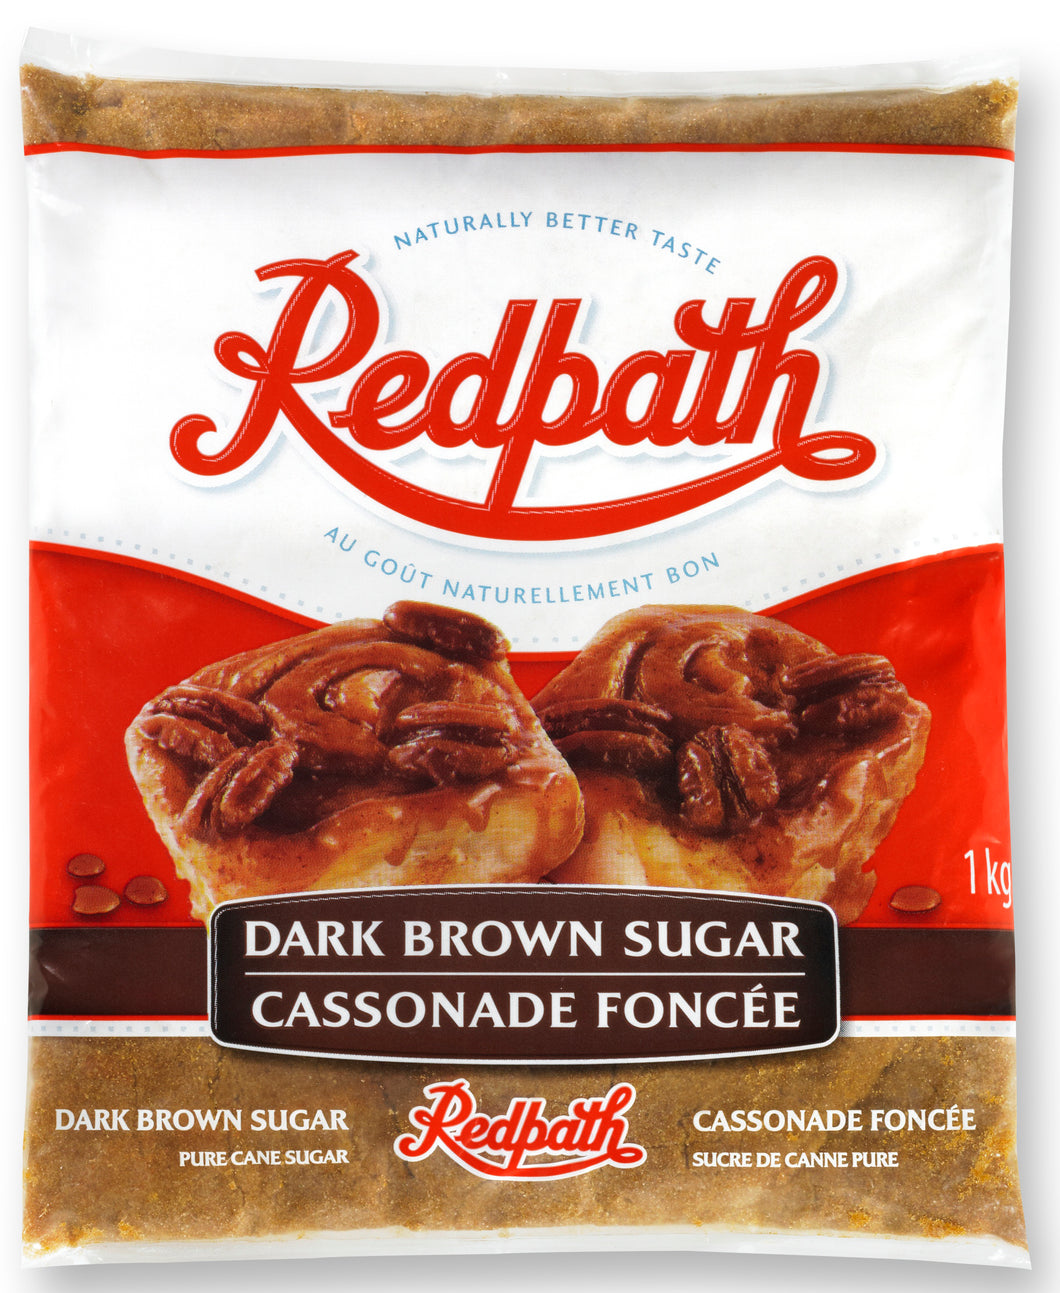 Bag of Redpath dark brown sugar